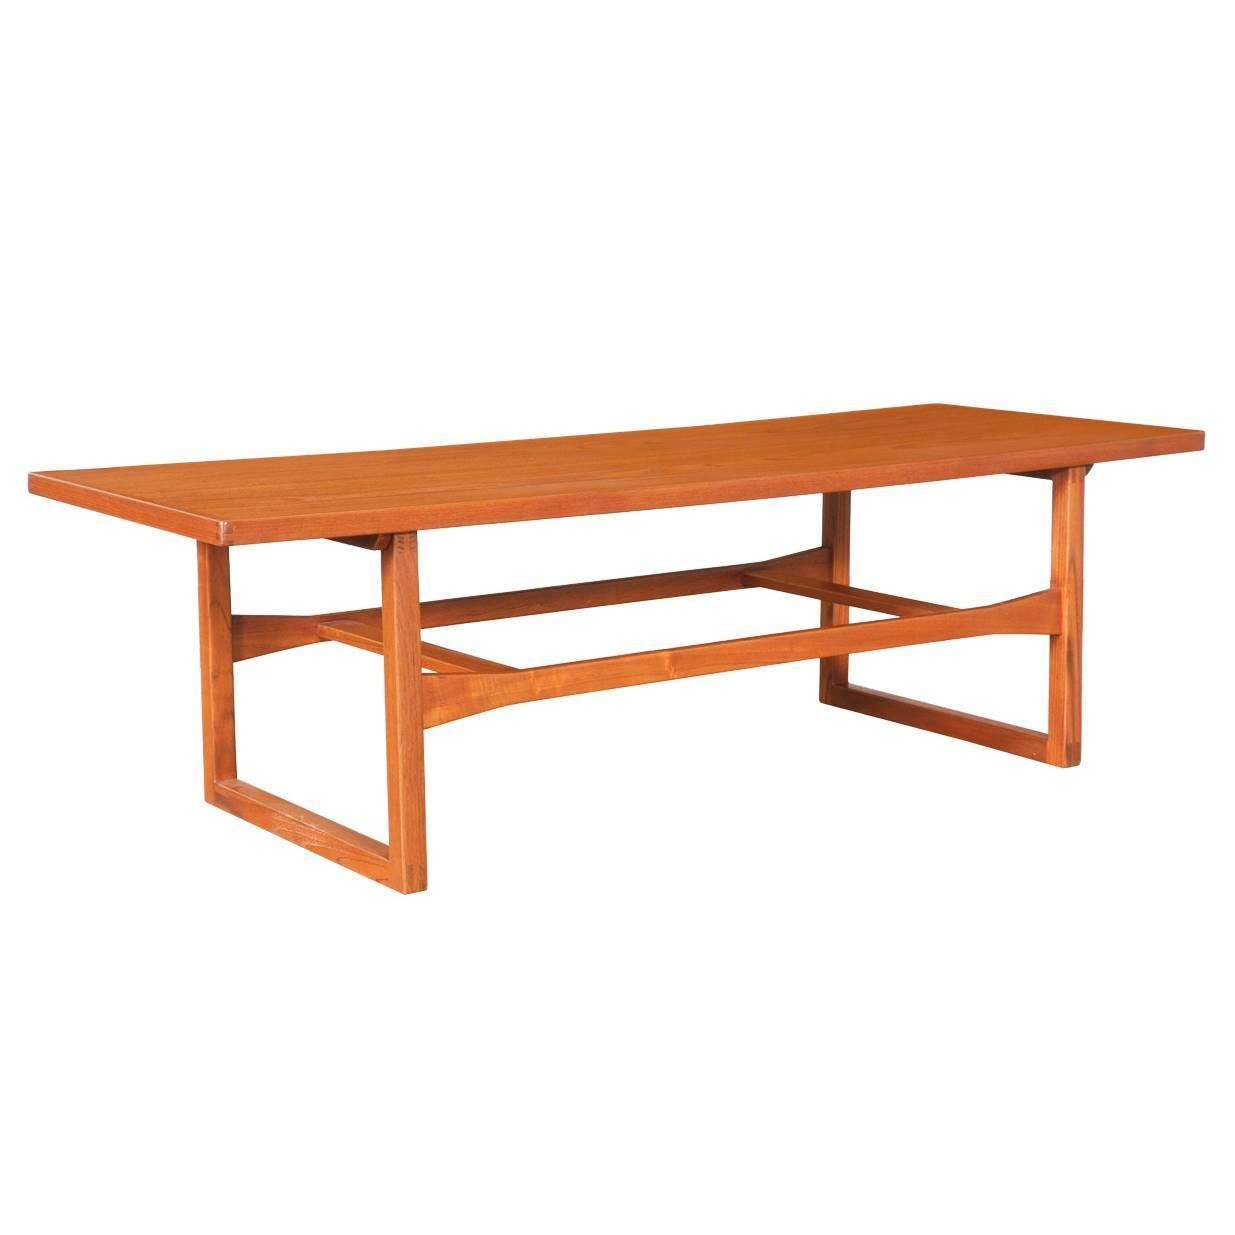 Danish modern teak coffee table by moreddi at 1stdibs Modern teak coffee table